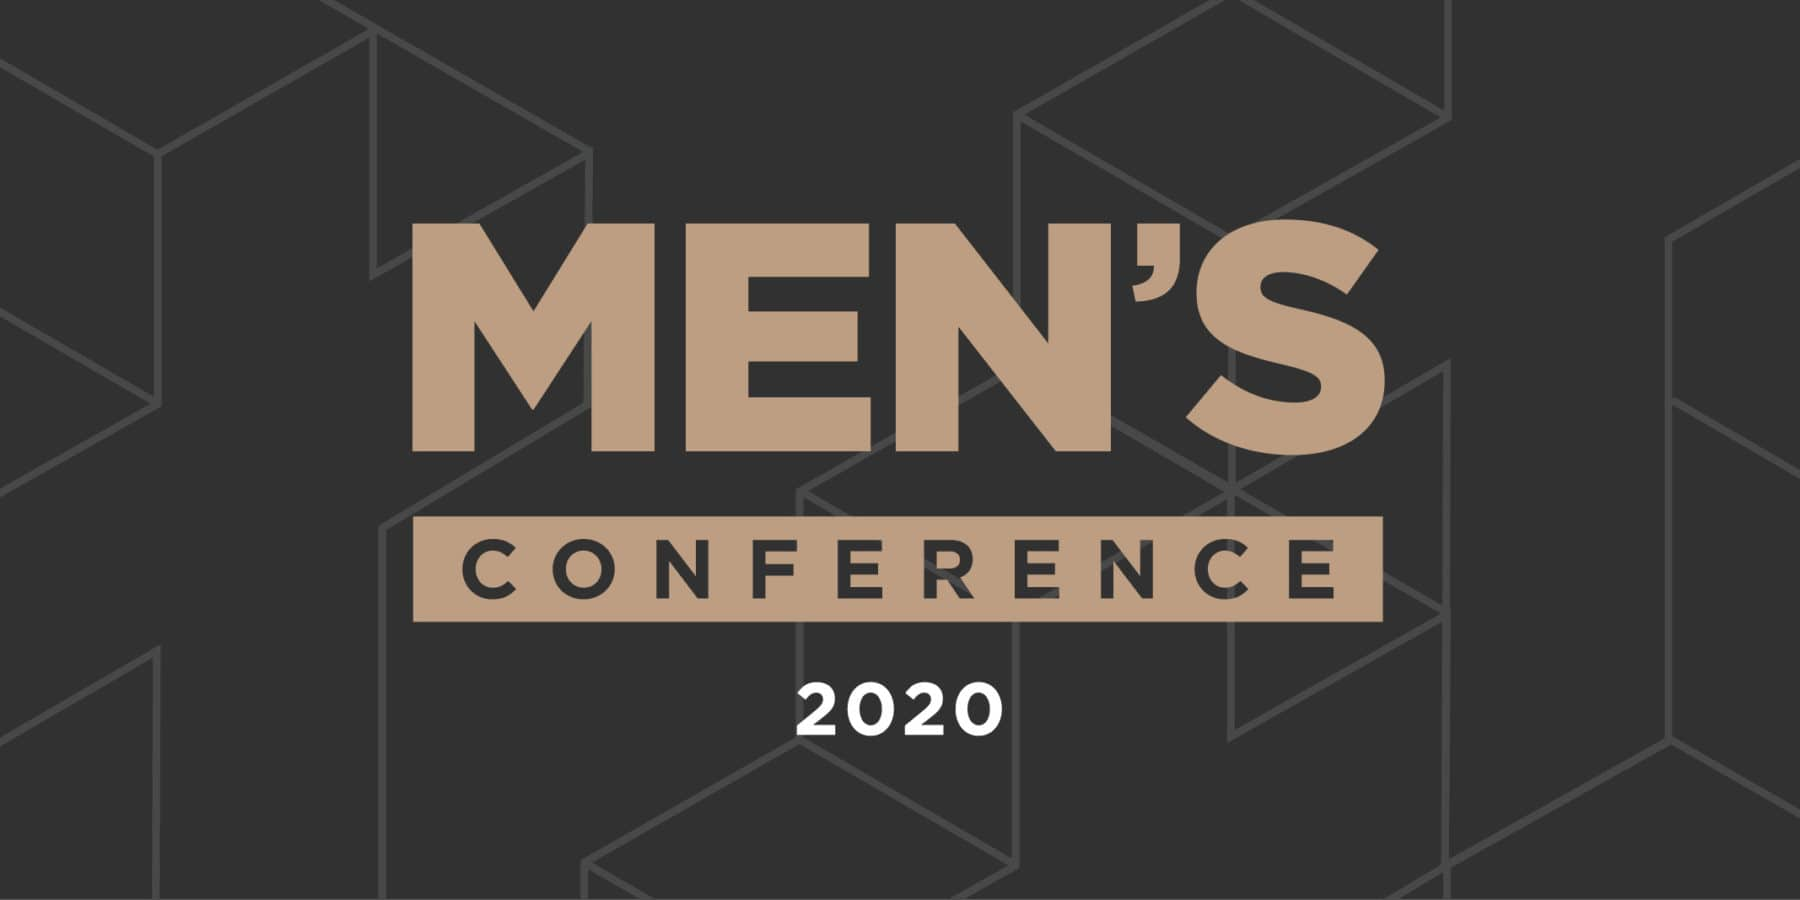 Men's Conference 2020